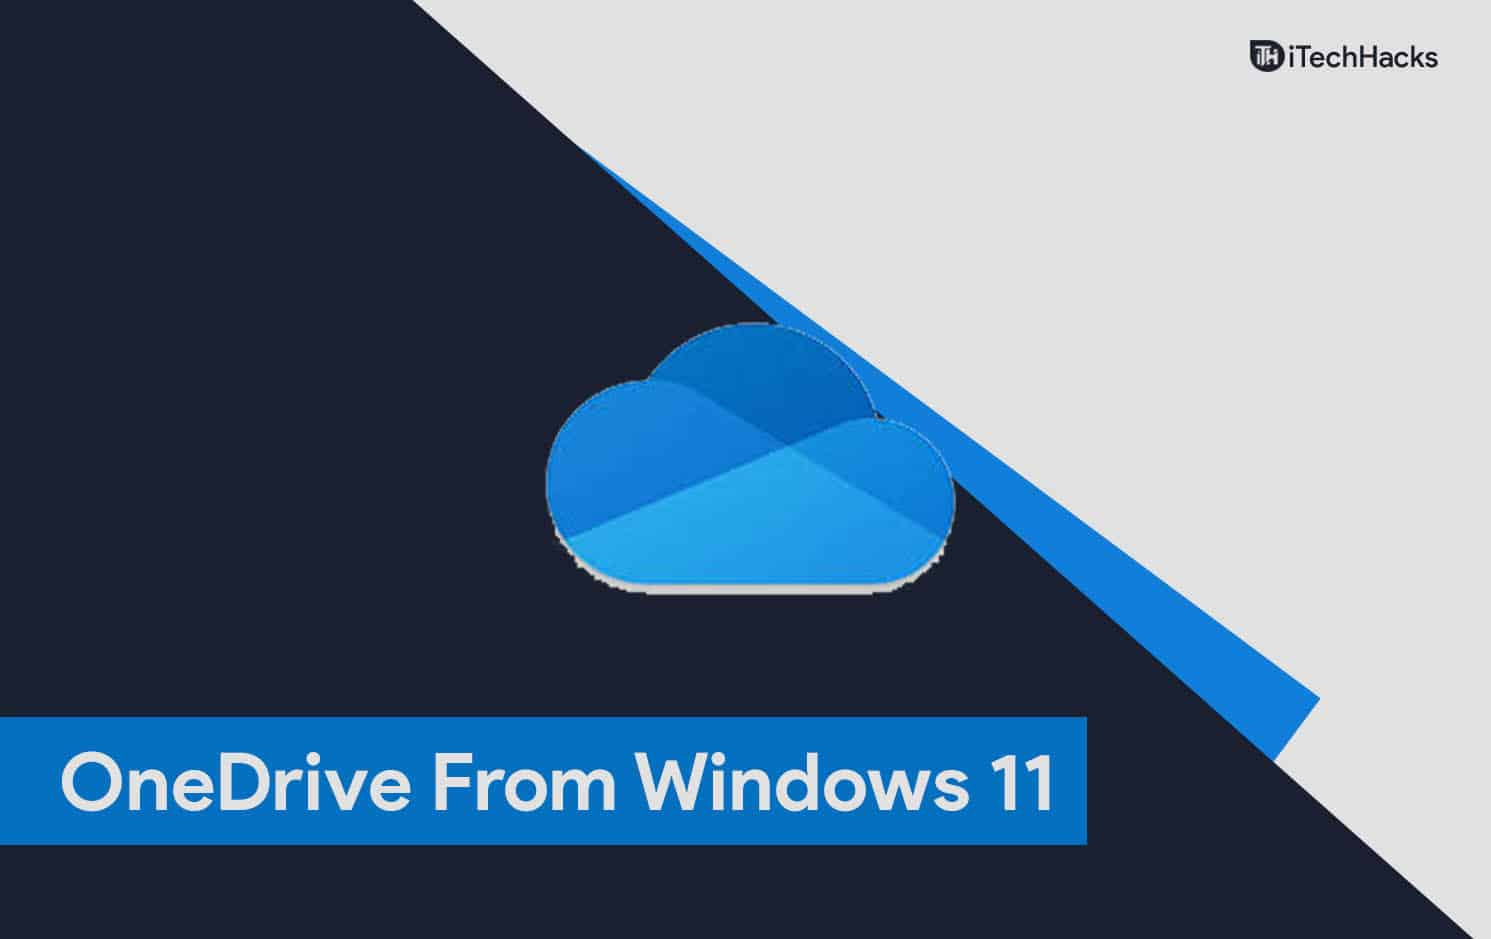 How To Disable Or Uninstall OneDrive From Windows 11